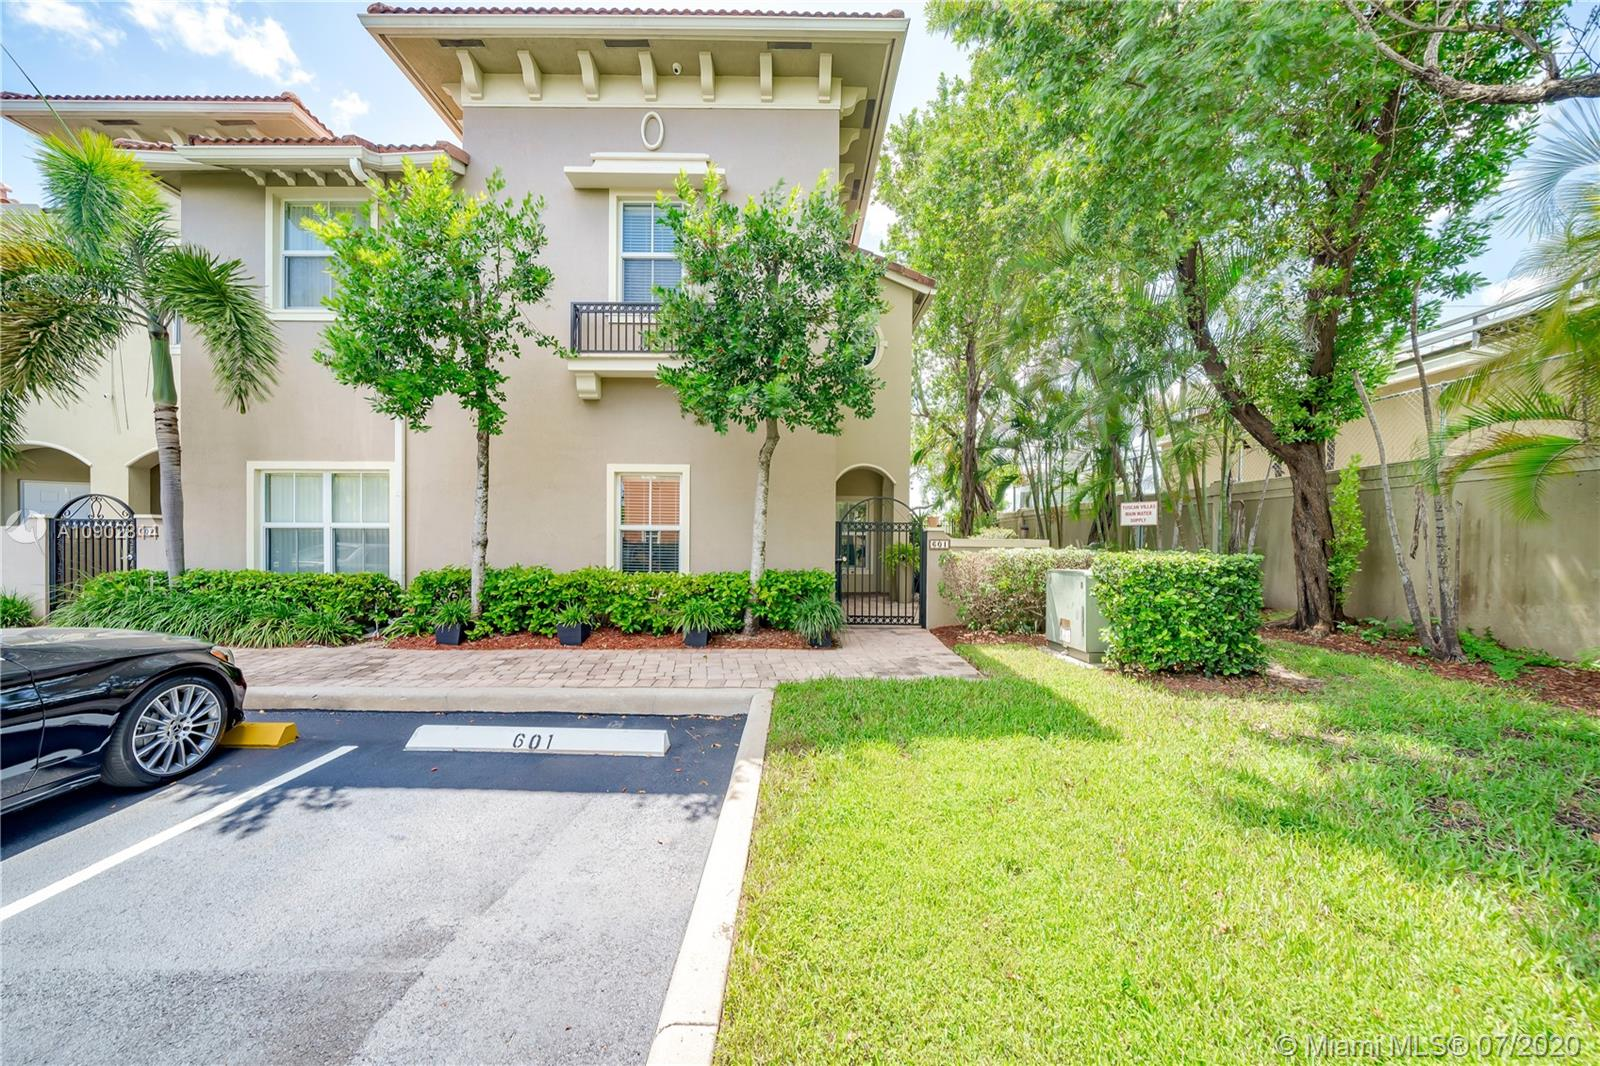 """Gorgeous corner unit townhome w/3 bedroom 3 bath plus loft in the gated community of Tuscan Villas!! Impact glass windows/doors throughout! Built-in 2008. Large kitchen with wood cabinetry (42""""), granite countertops & stainless steel appliances. Washer/dryer purchased new in 2014 and kitchen appliances purchased new in 2017.  Tile flooring in main living areas. Crown molding, deep baseboards & tons of natural light. First floor has 1 bedroom & full bath. Both bedrooms upstairs have on-suite baths. Master has walk-in closet & bath features double vanity, framed mirror & shower/tub. Large loft upstairs great for office/den. Fantastic community w/gate & pool. HOA fee covers insurance, roof repairs, water, cable & so much more! Property is in immaculate condition!"""